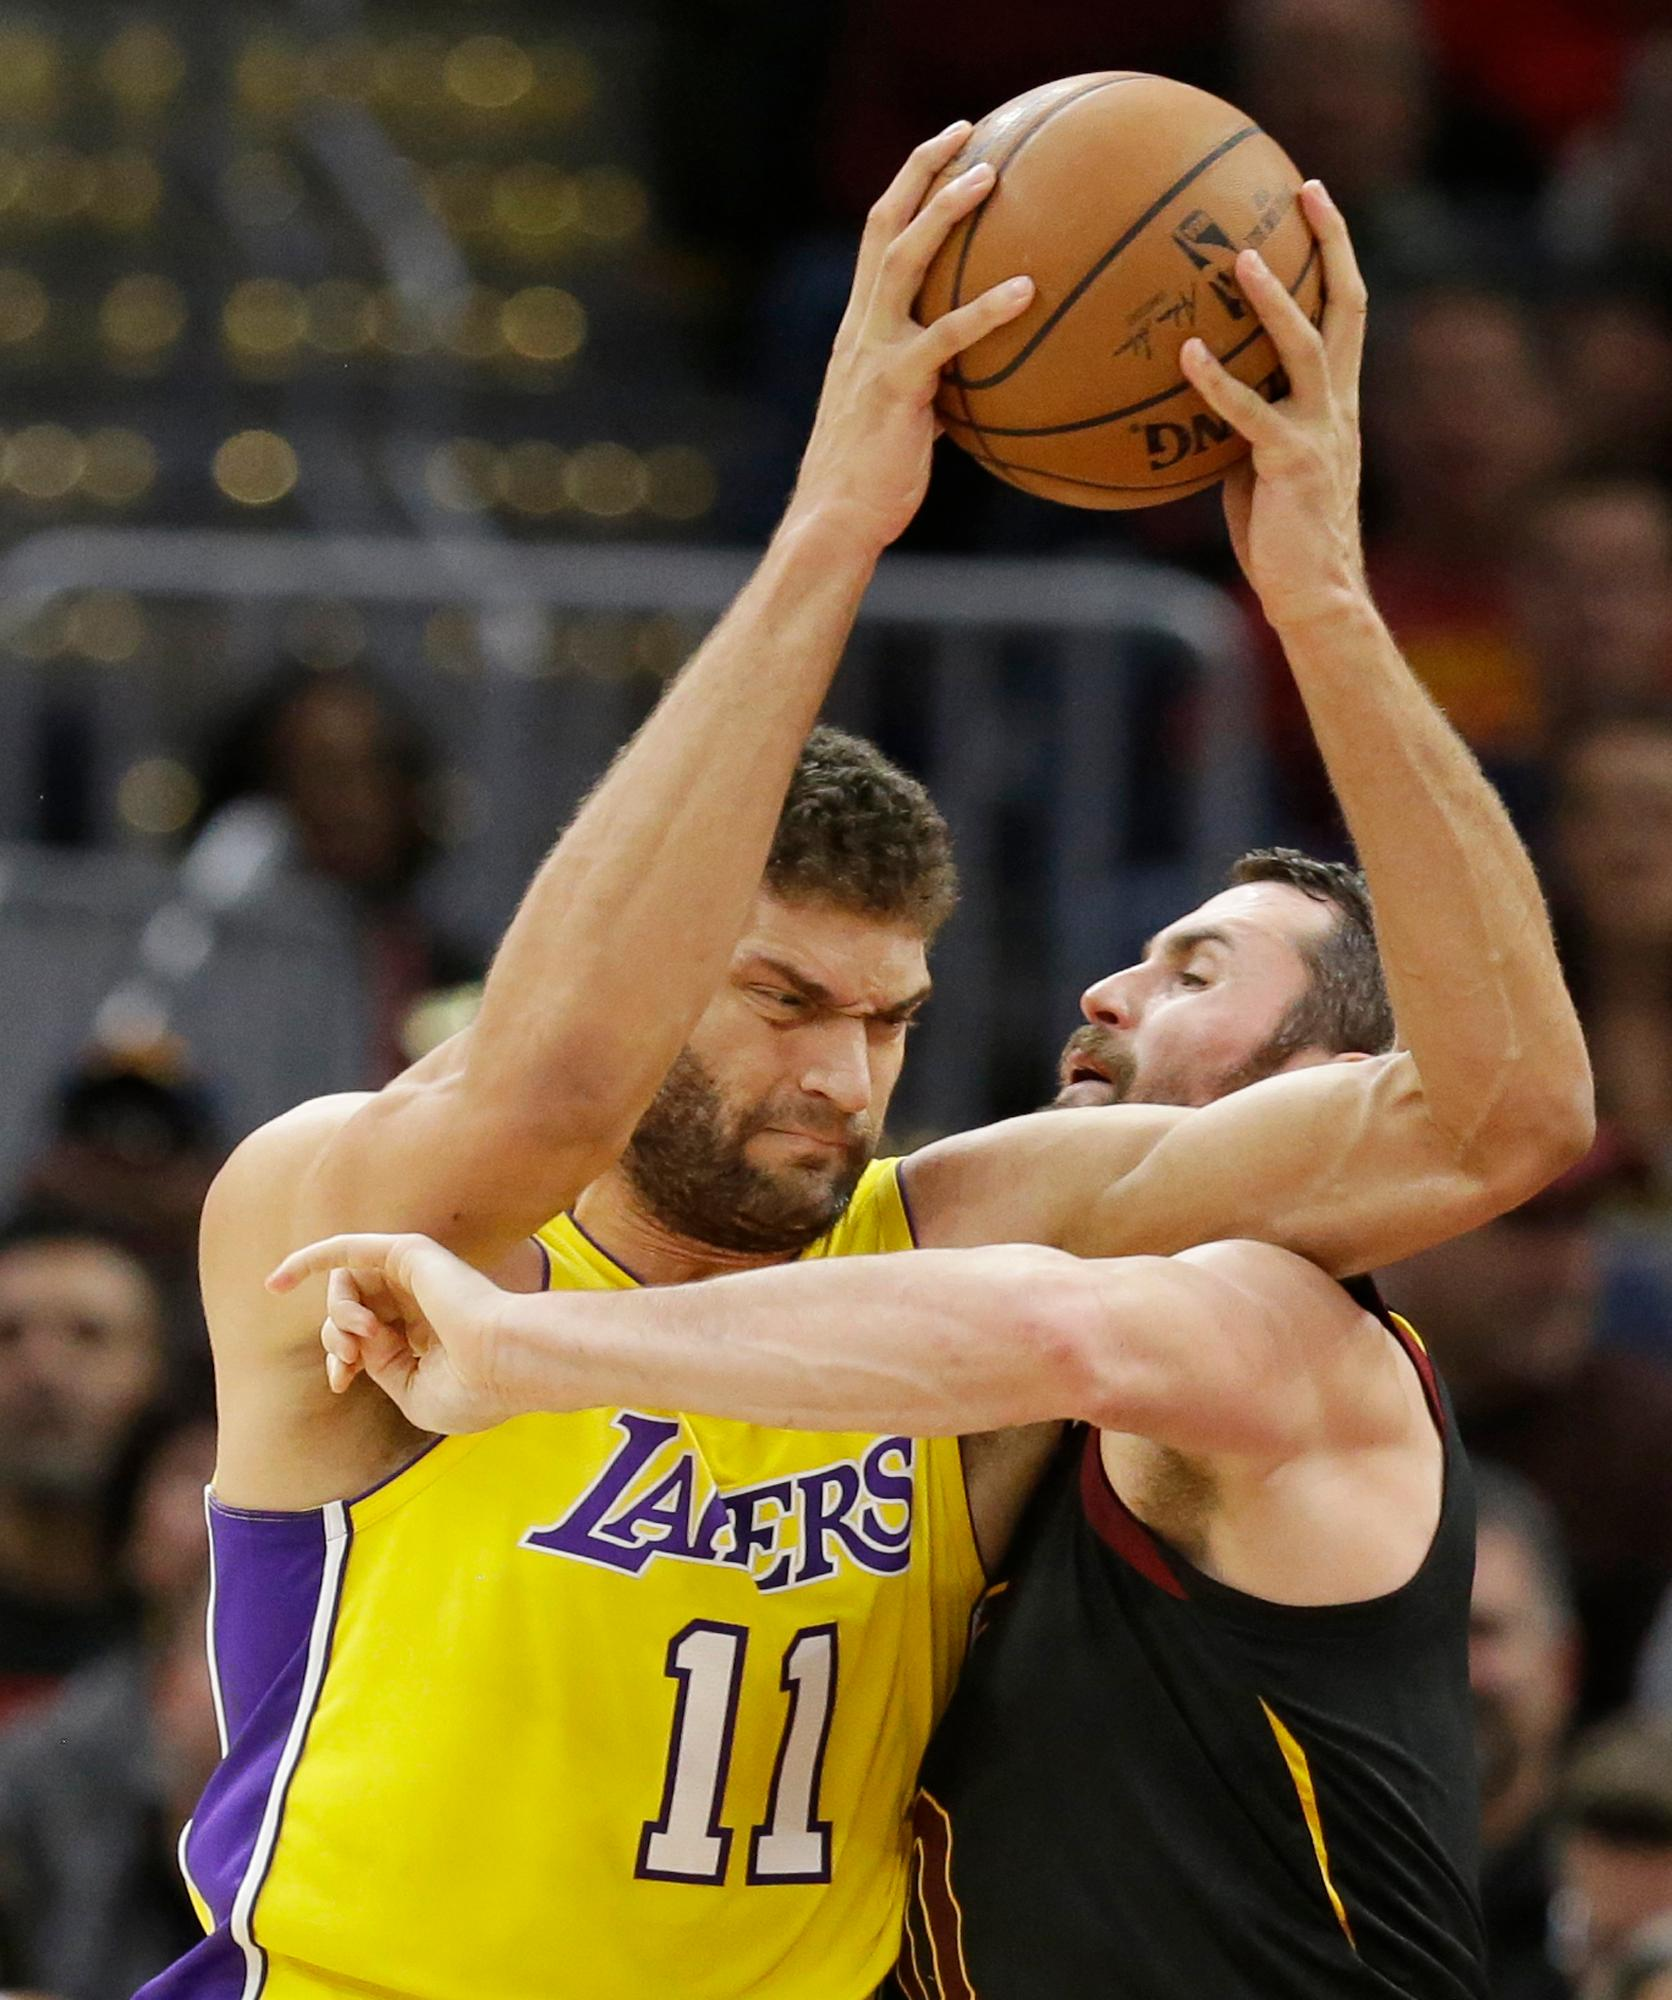 Los Angeles Lakers' Brook Lopez (11) is called for the foul against Cleveland Cavaliers' Kevin Love (0) in the first half of an NBA basketball game, Thursday, Dec. 14, 2017, in Cleveland. (AP Photo/Tony Dejak)